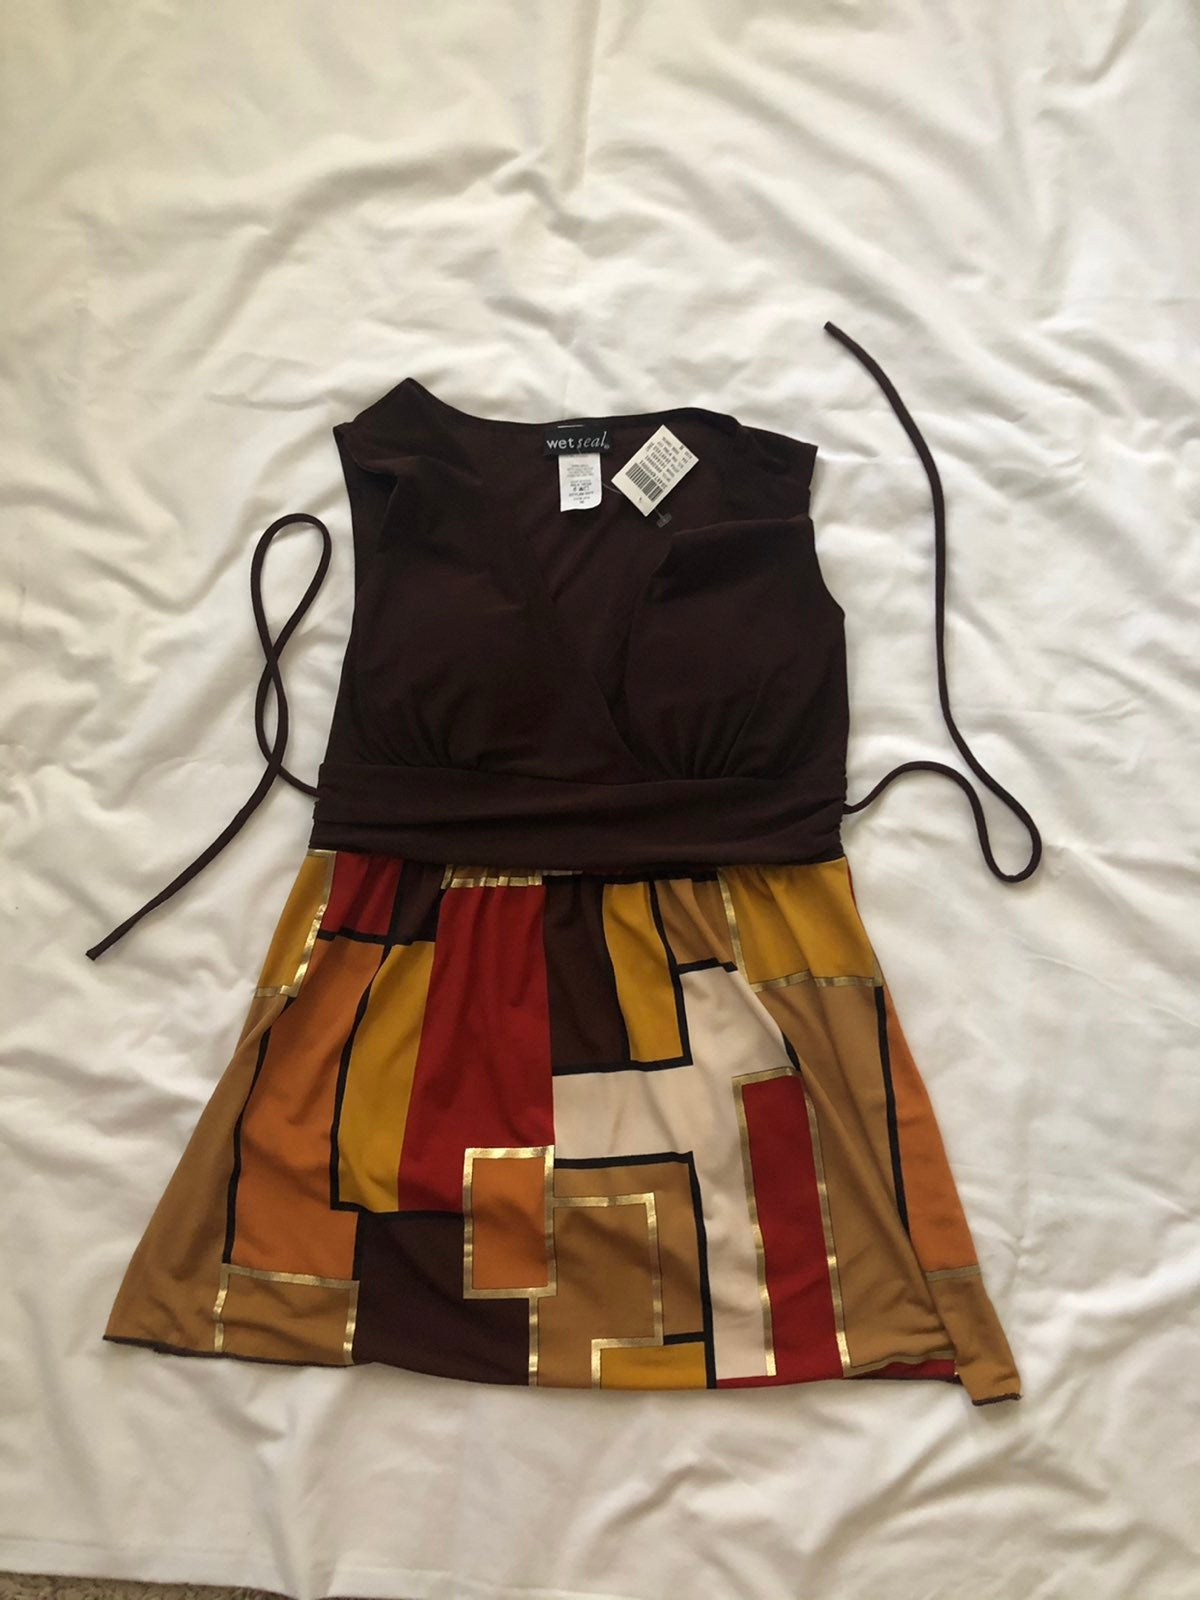 NWT WET SEAL TOP WITH BUILT IN BRA